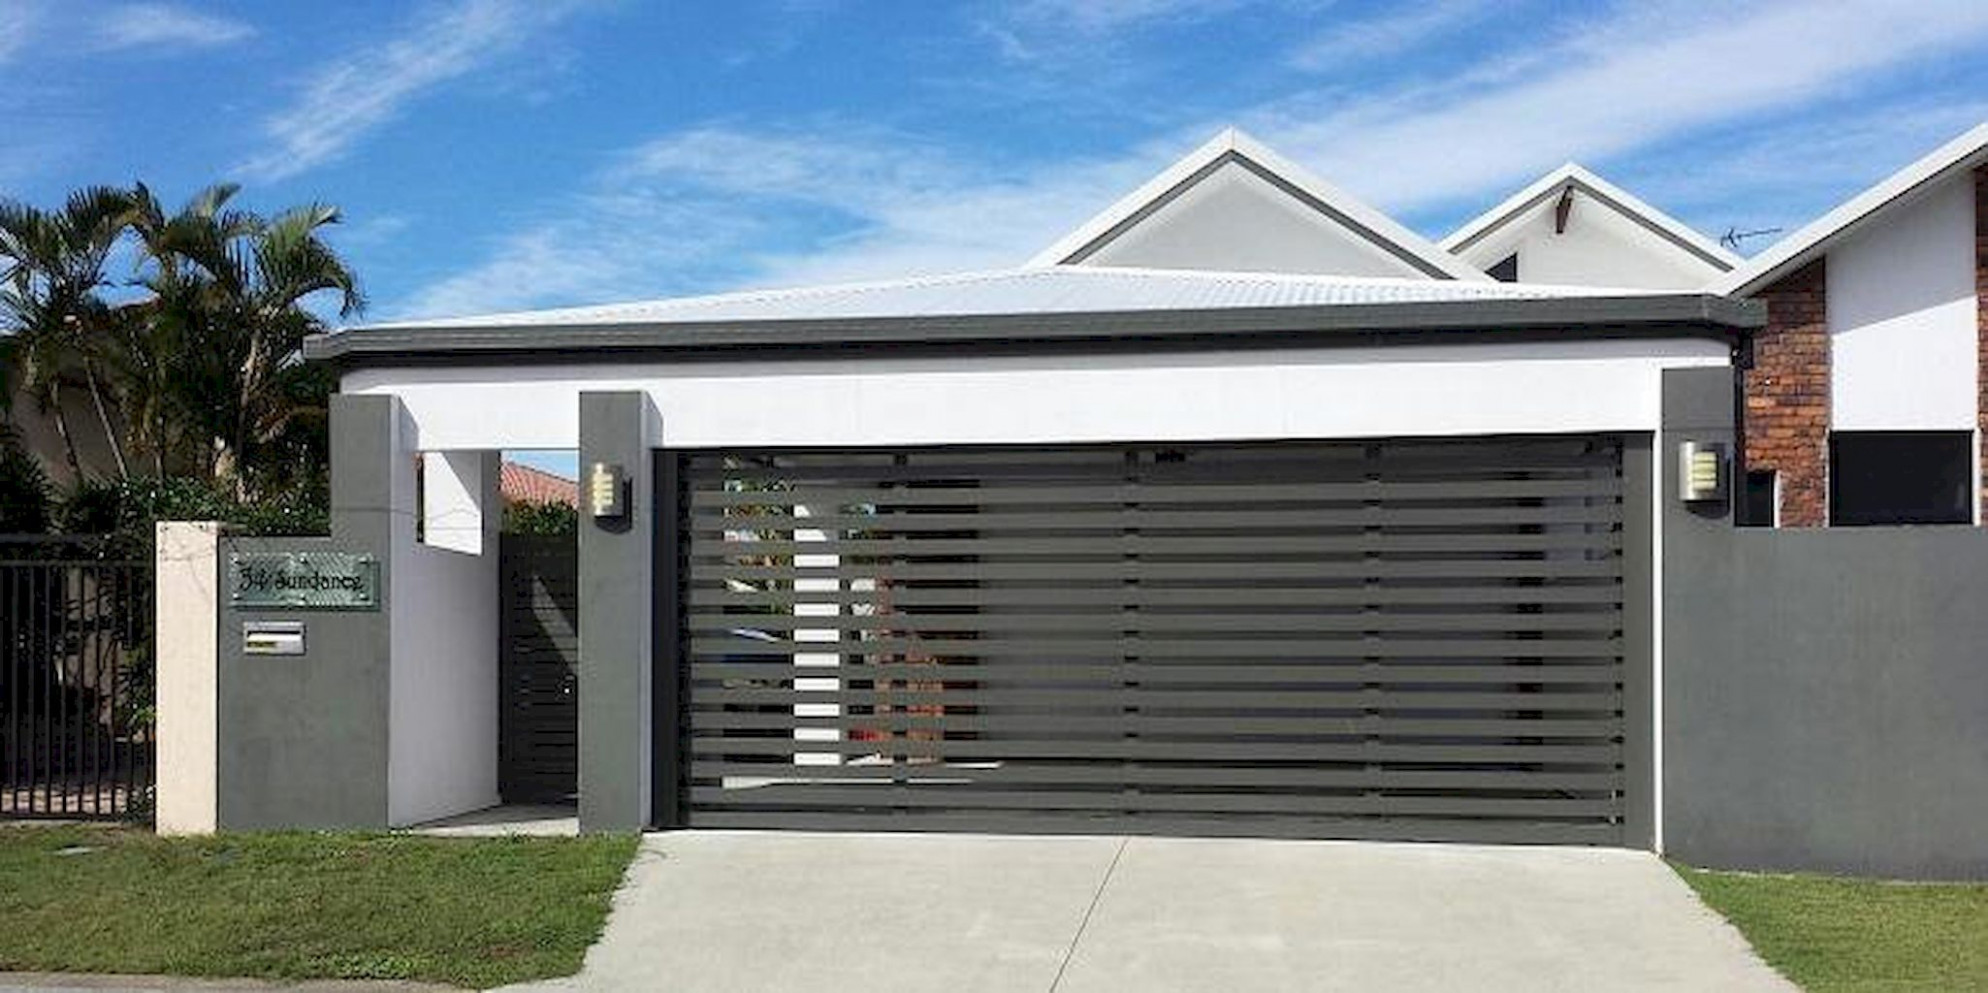 Image Result For Carport With Garage Door Opener In 7 ..